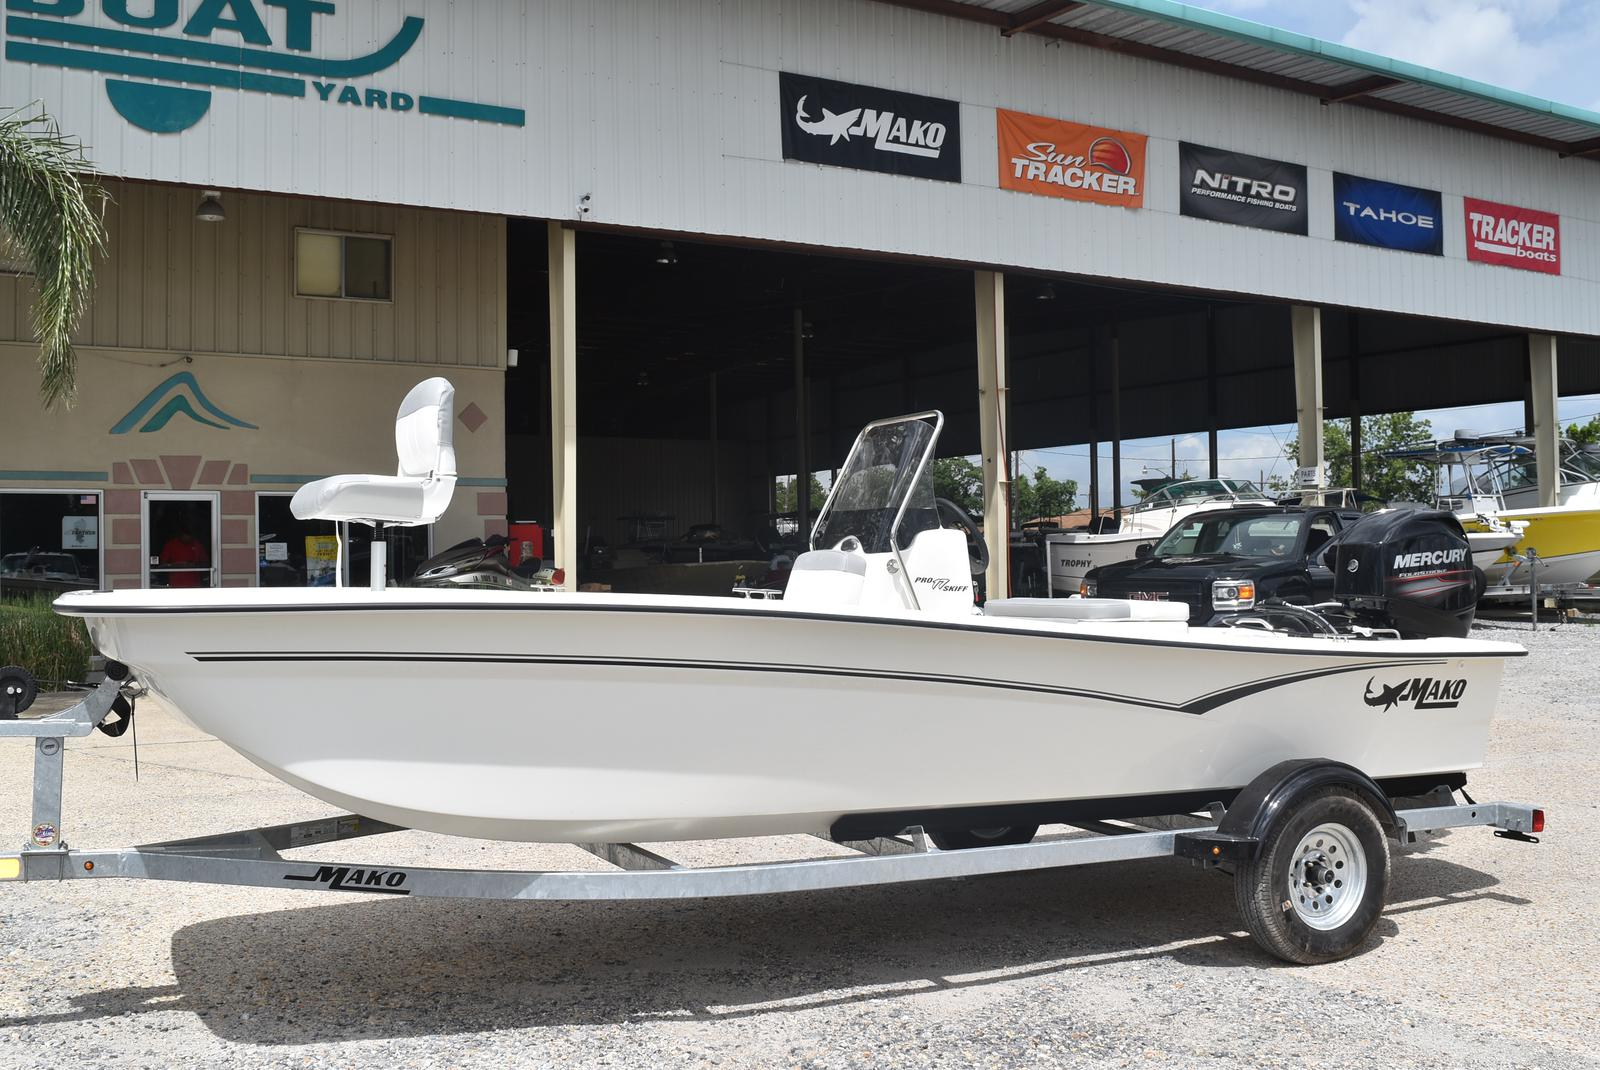 2020 Mako boat for sale, model of the boat is Pro Skiff 17, 75 ELPT & Image # 111 of 702